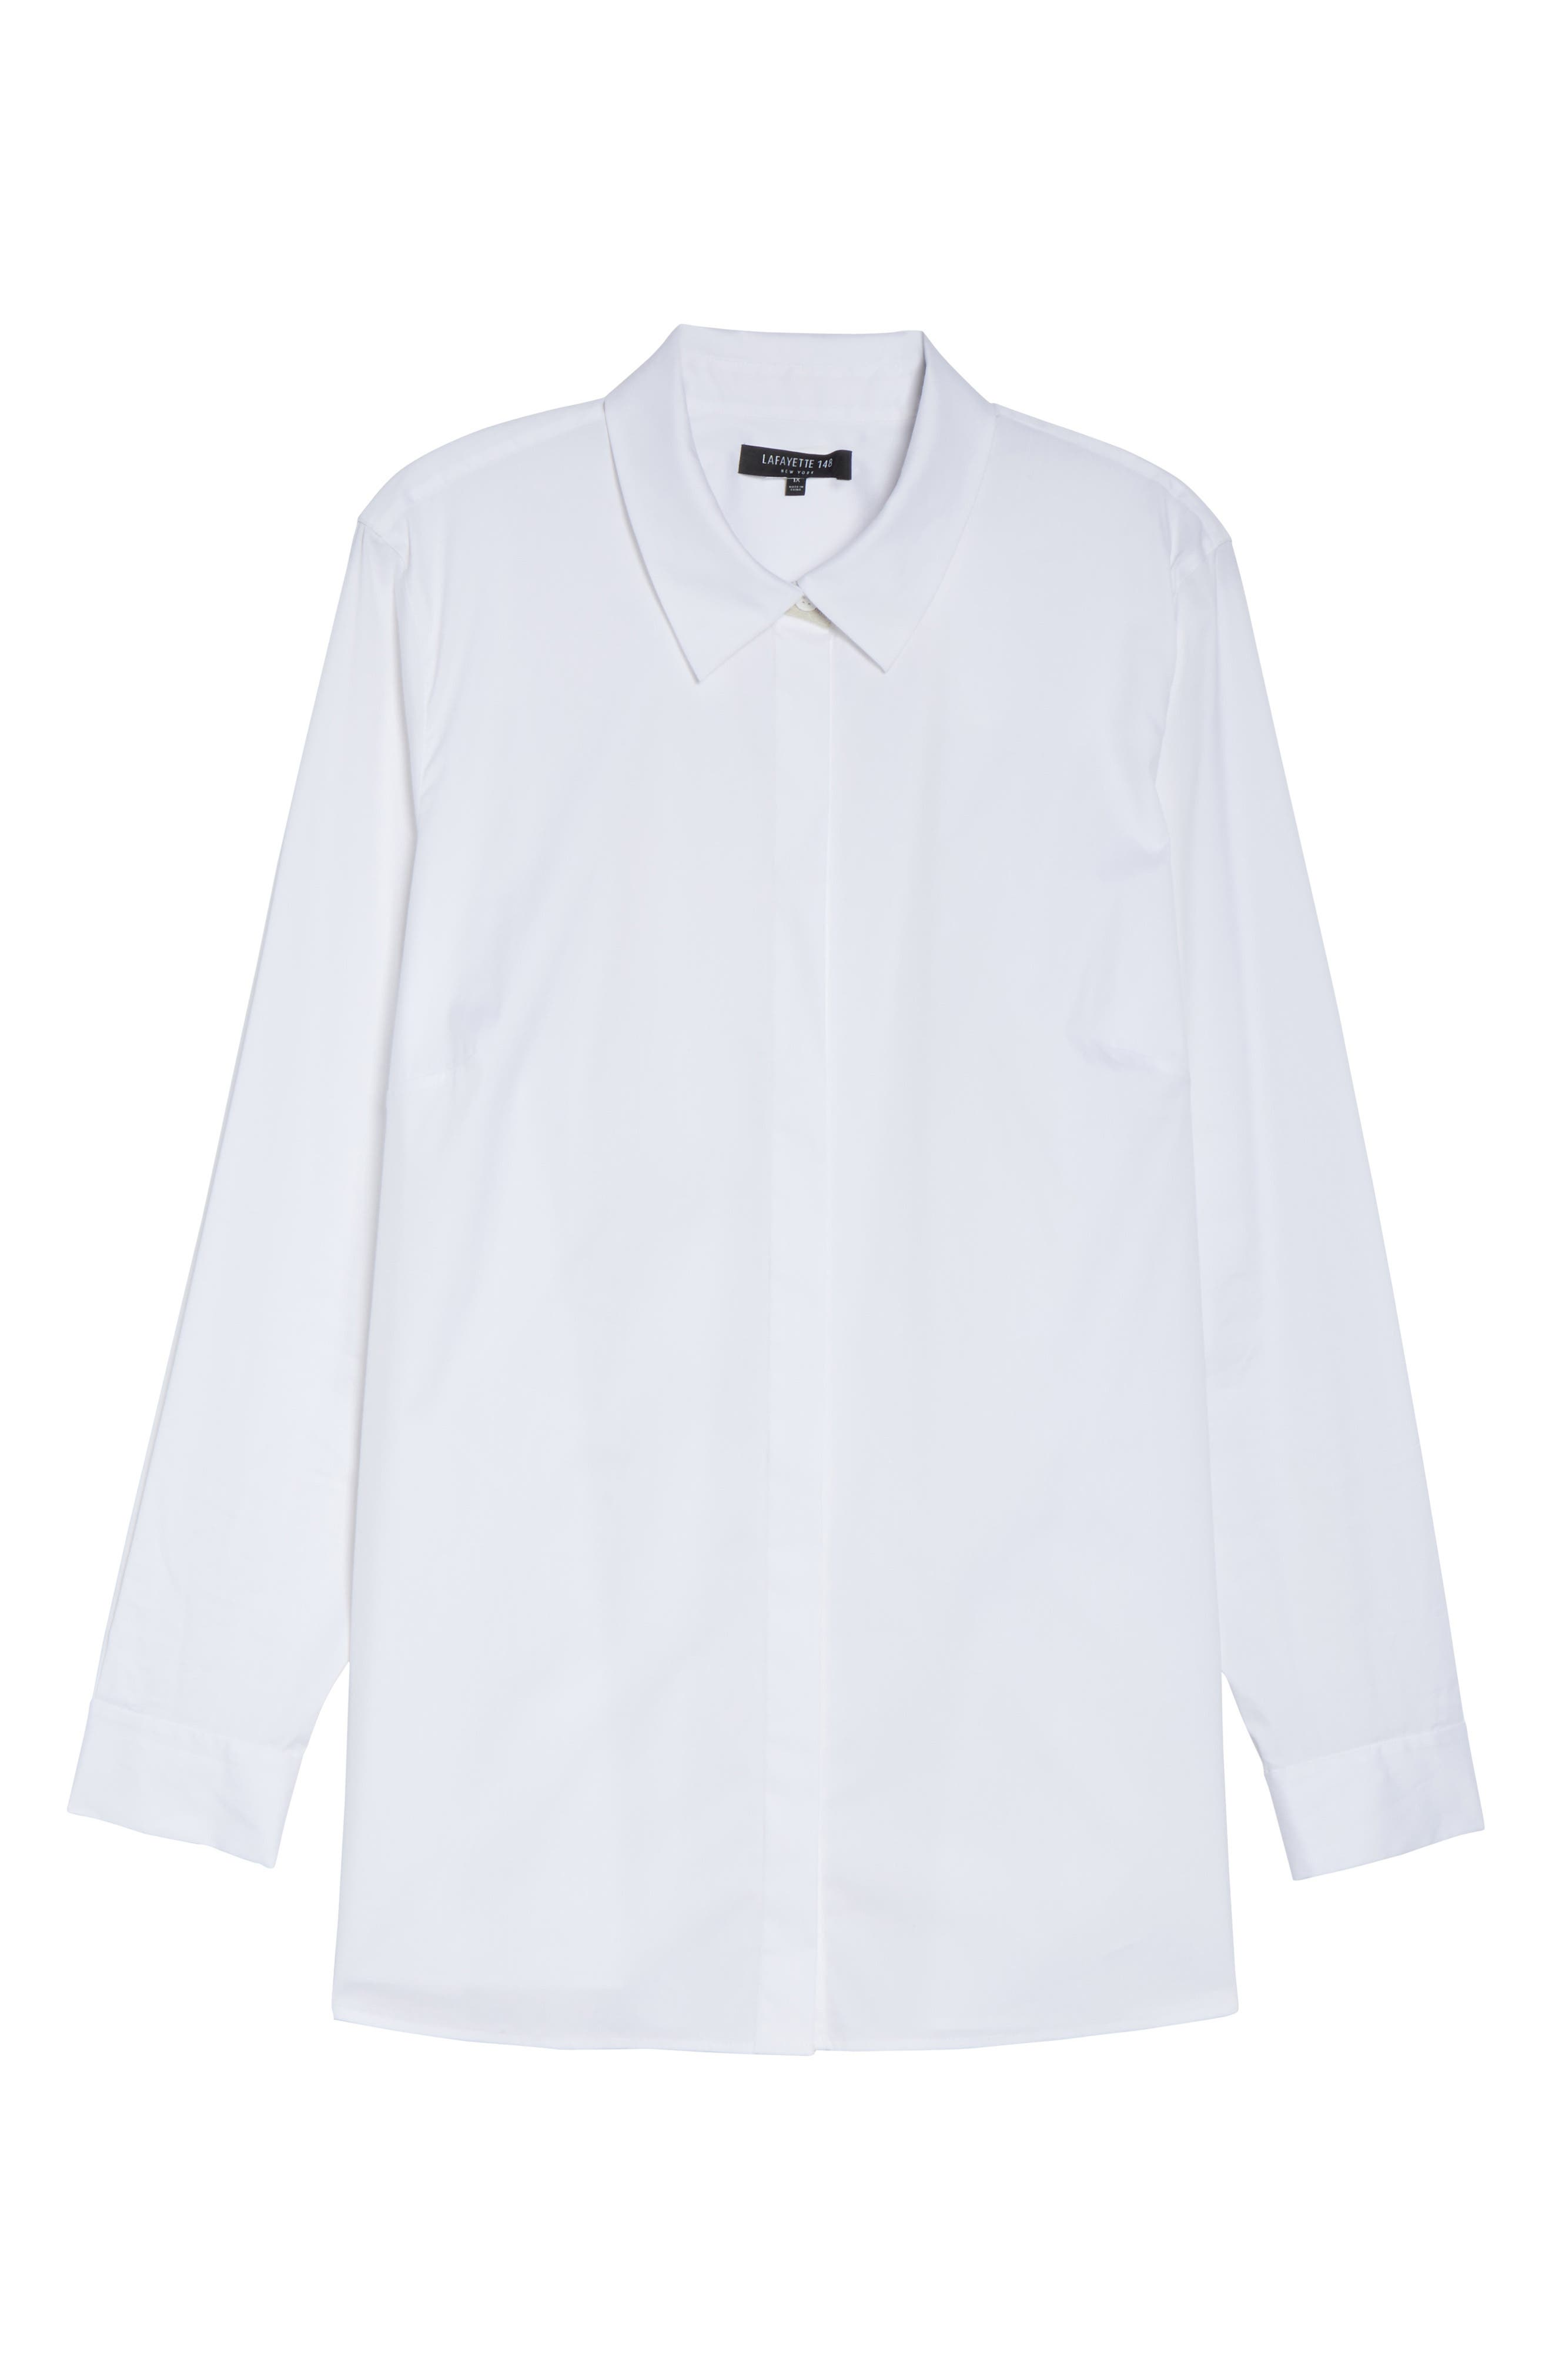 Lafayette 148 Braden Step Hem Blouse,                             Alternate thumbnail 6, color,                             100